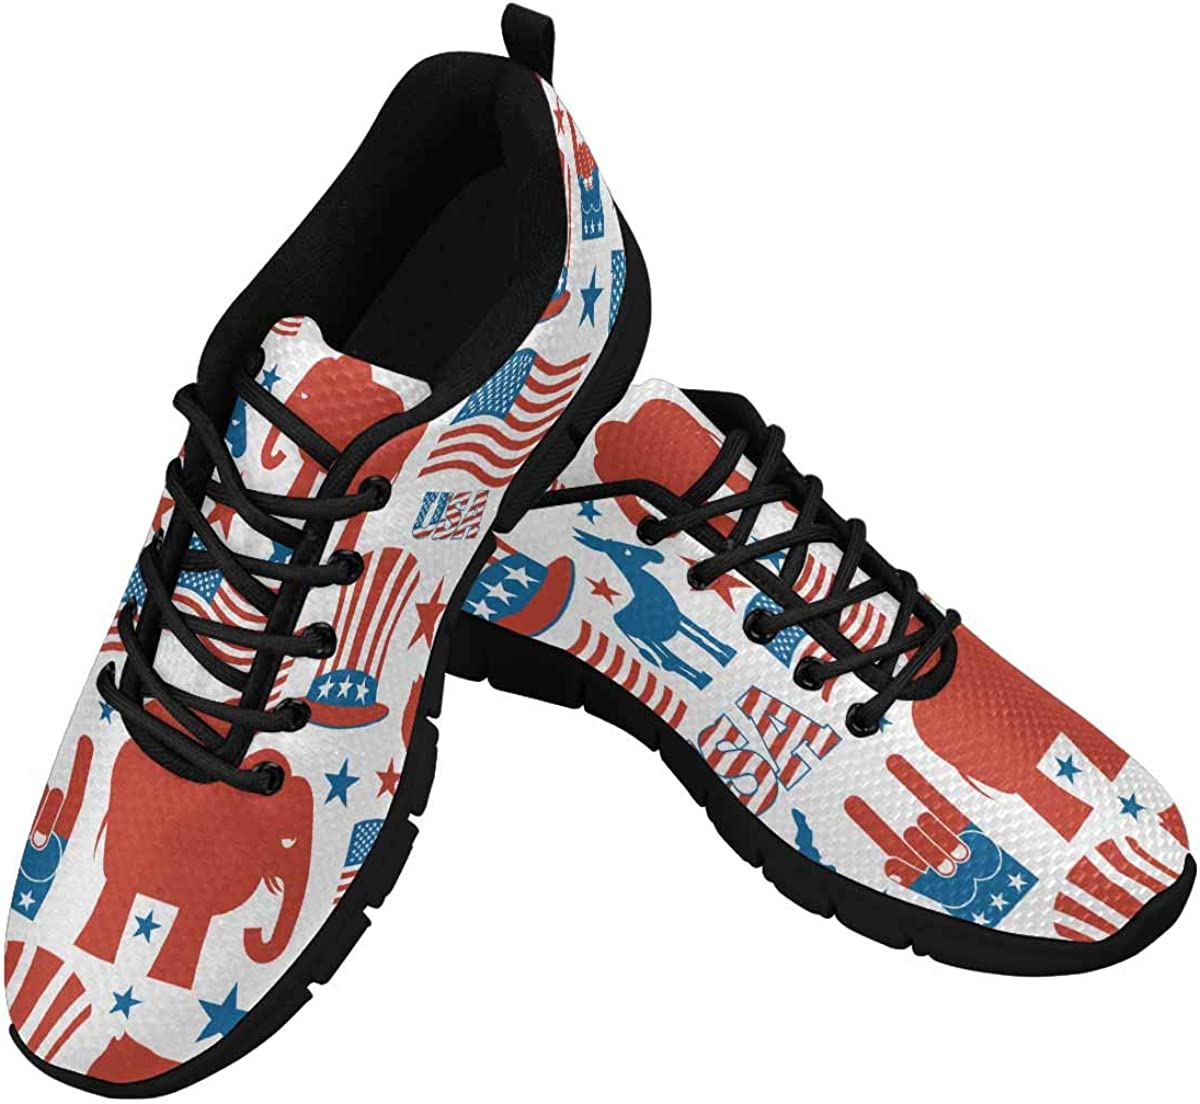 INTERESTPRINT Uncle Sam Hat, American Flag and Map Women's Athletic Mesh Breathable Casual Sneakers Fashion Tennis Shoes